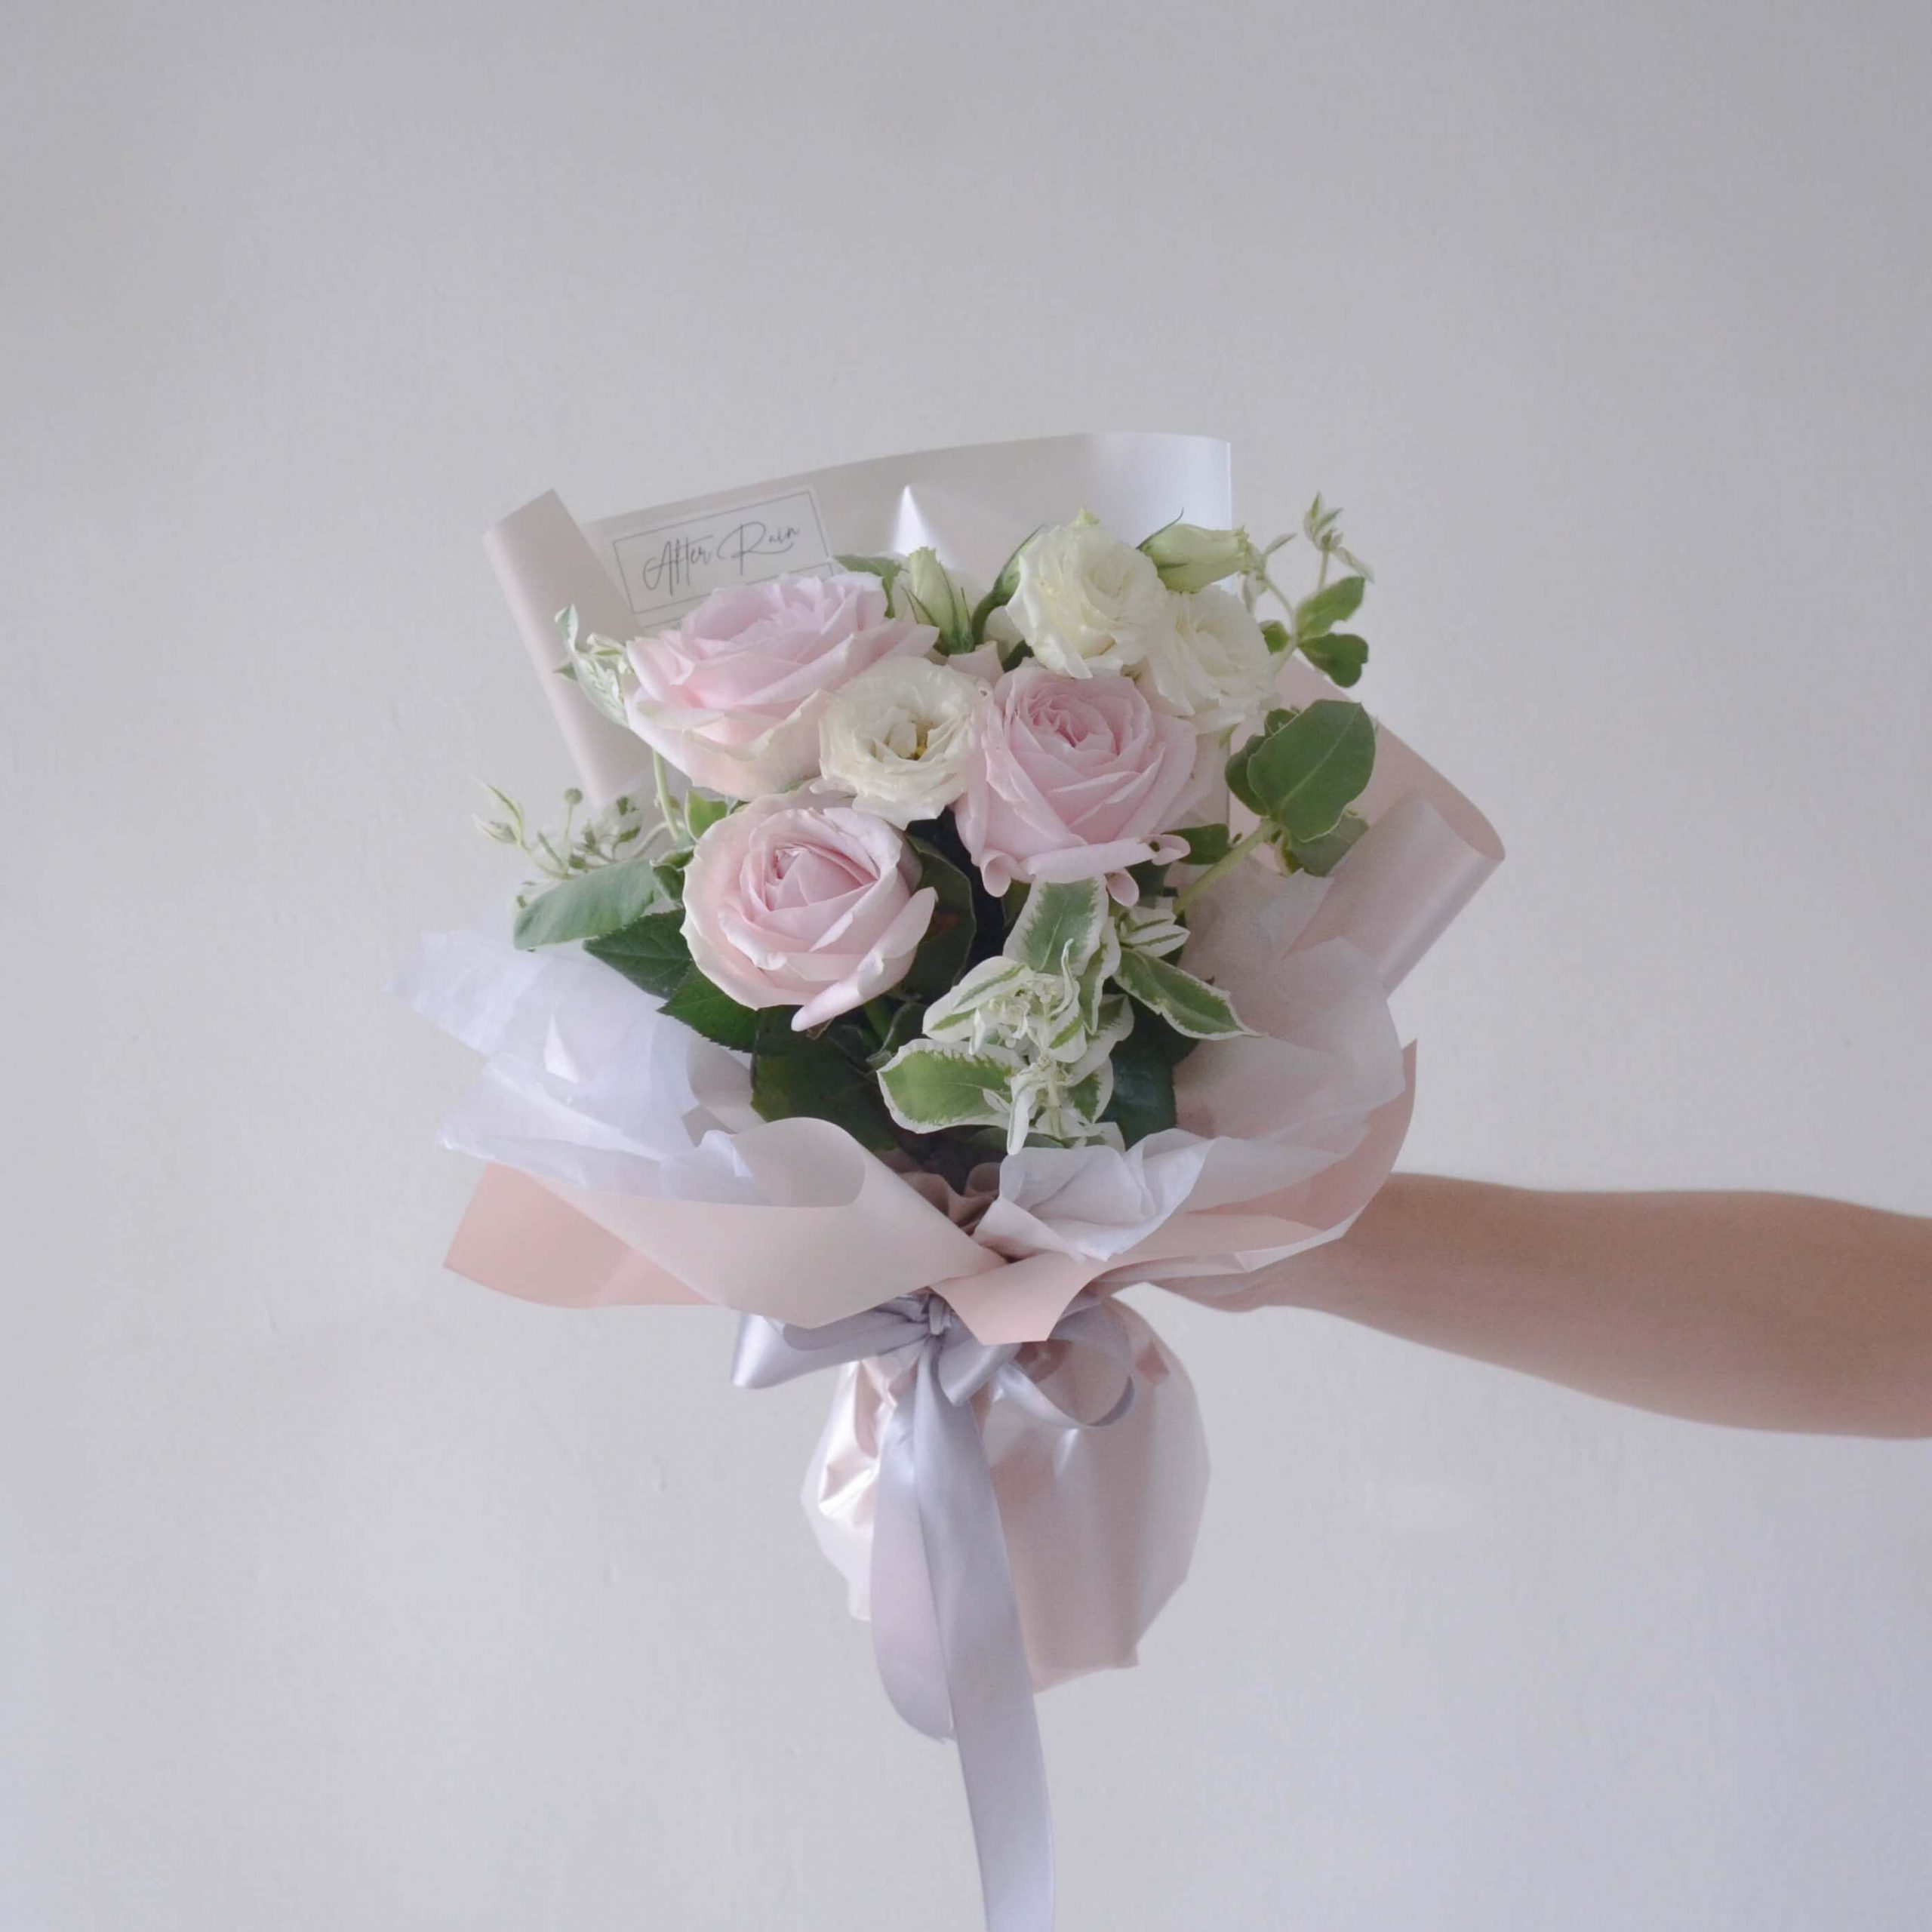 Fresh Bloom Bouquet featuring Avalanche Pink Rose, White Lisianthus & Variegated Euphorbia Marginata Leaf by AFTERRAINFLORIST